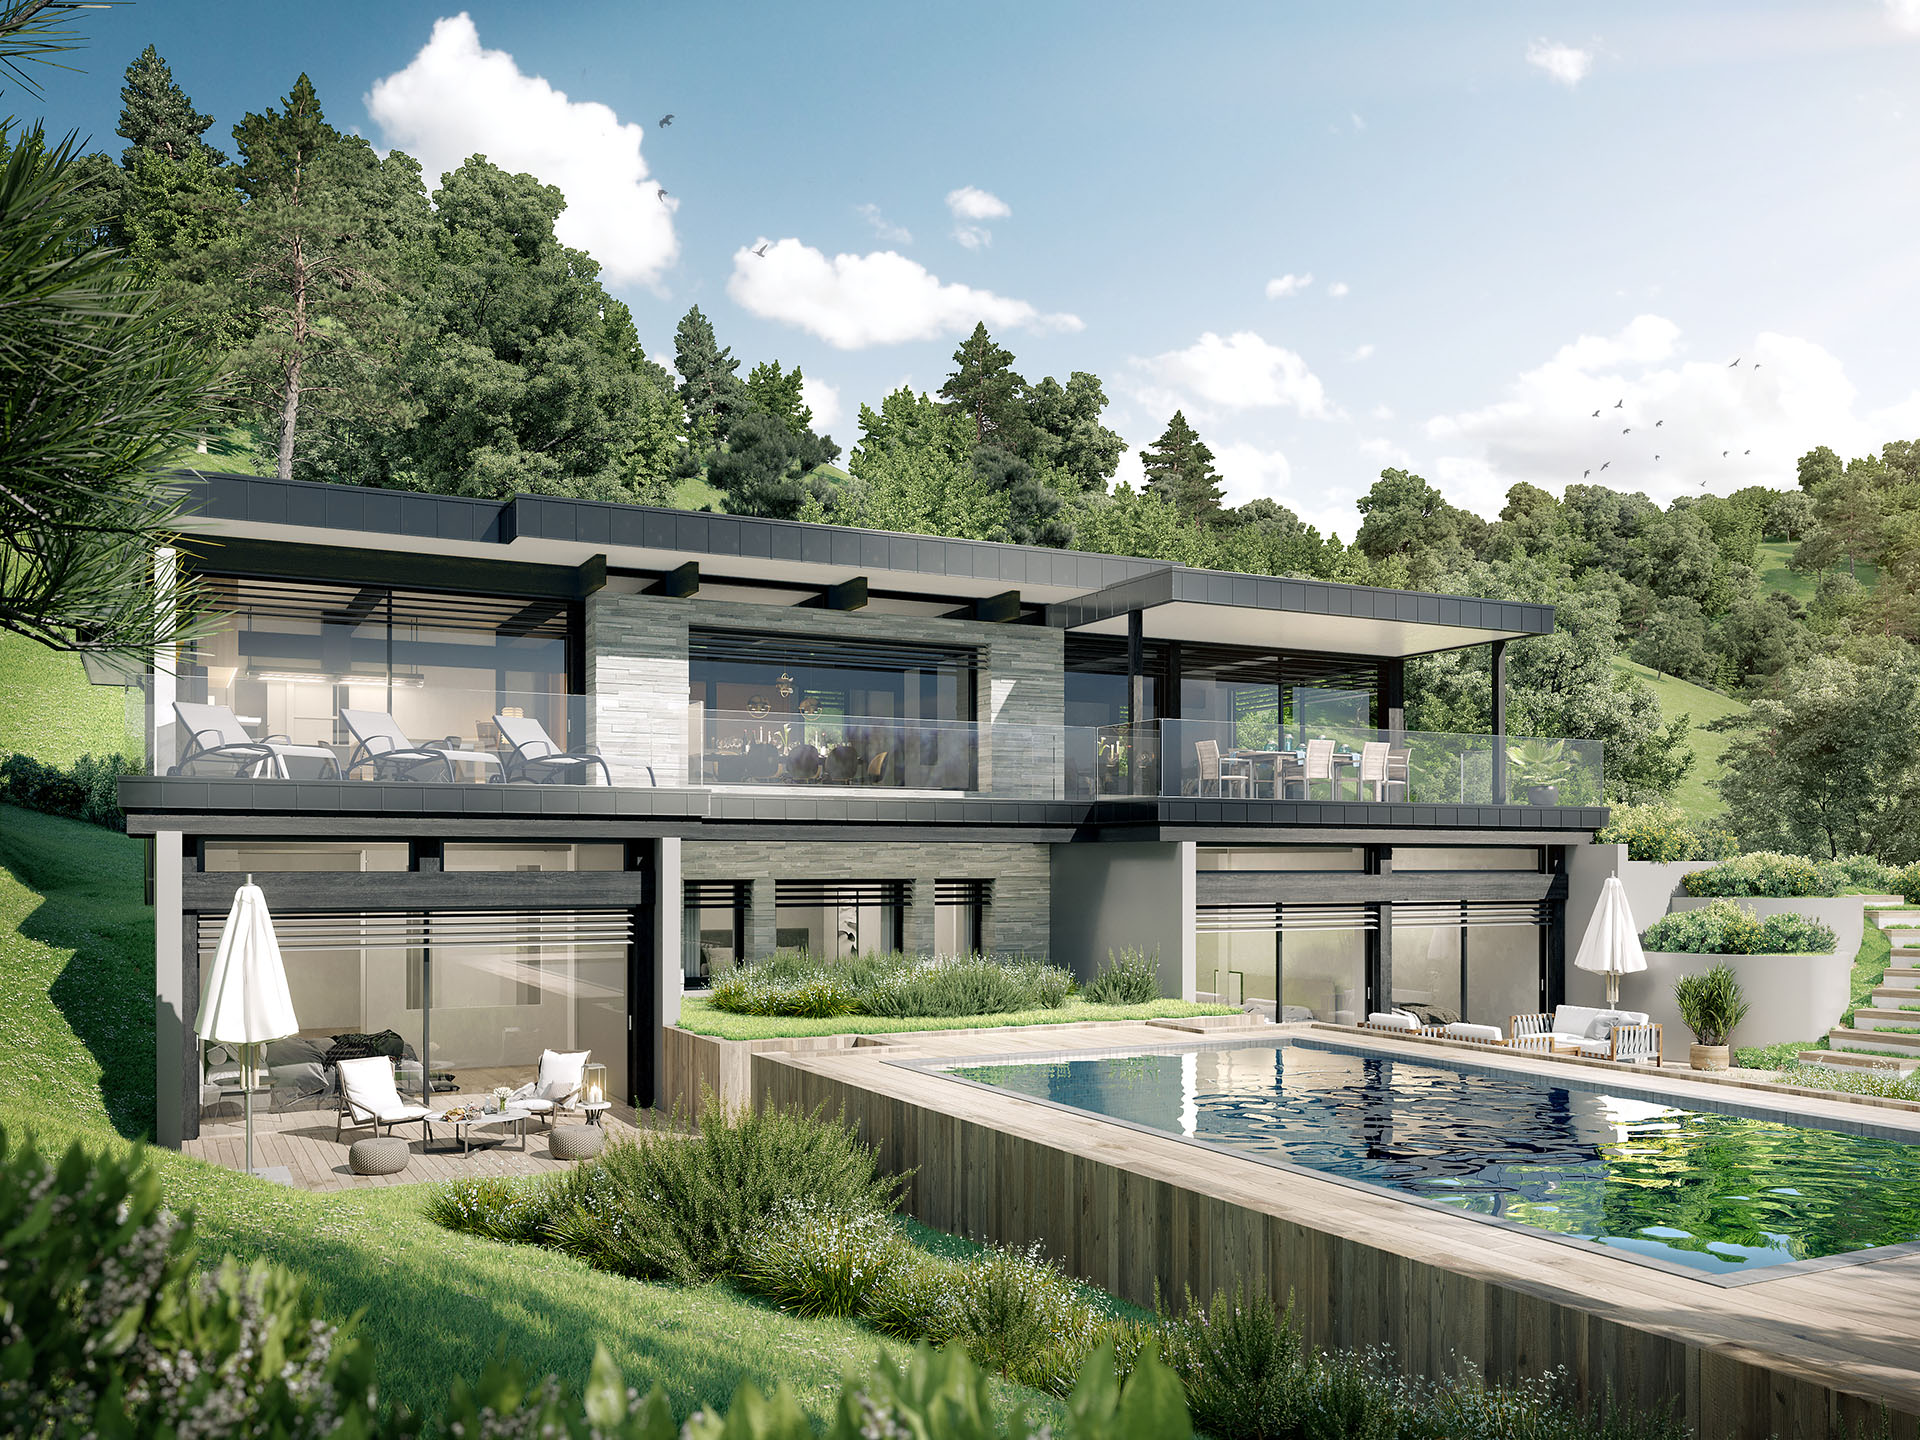 3D view of a modern and luxurious detached house with swimming pool